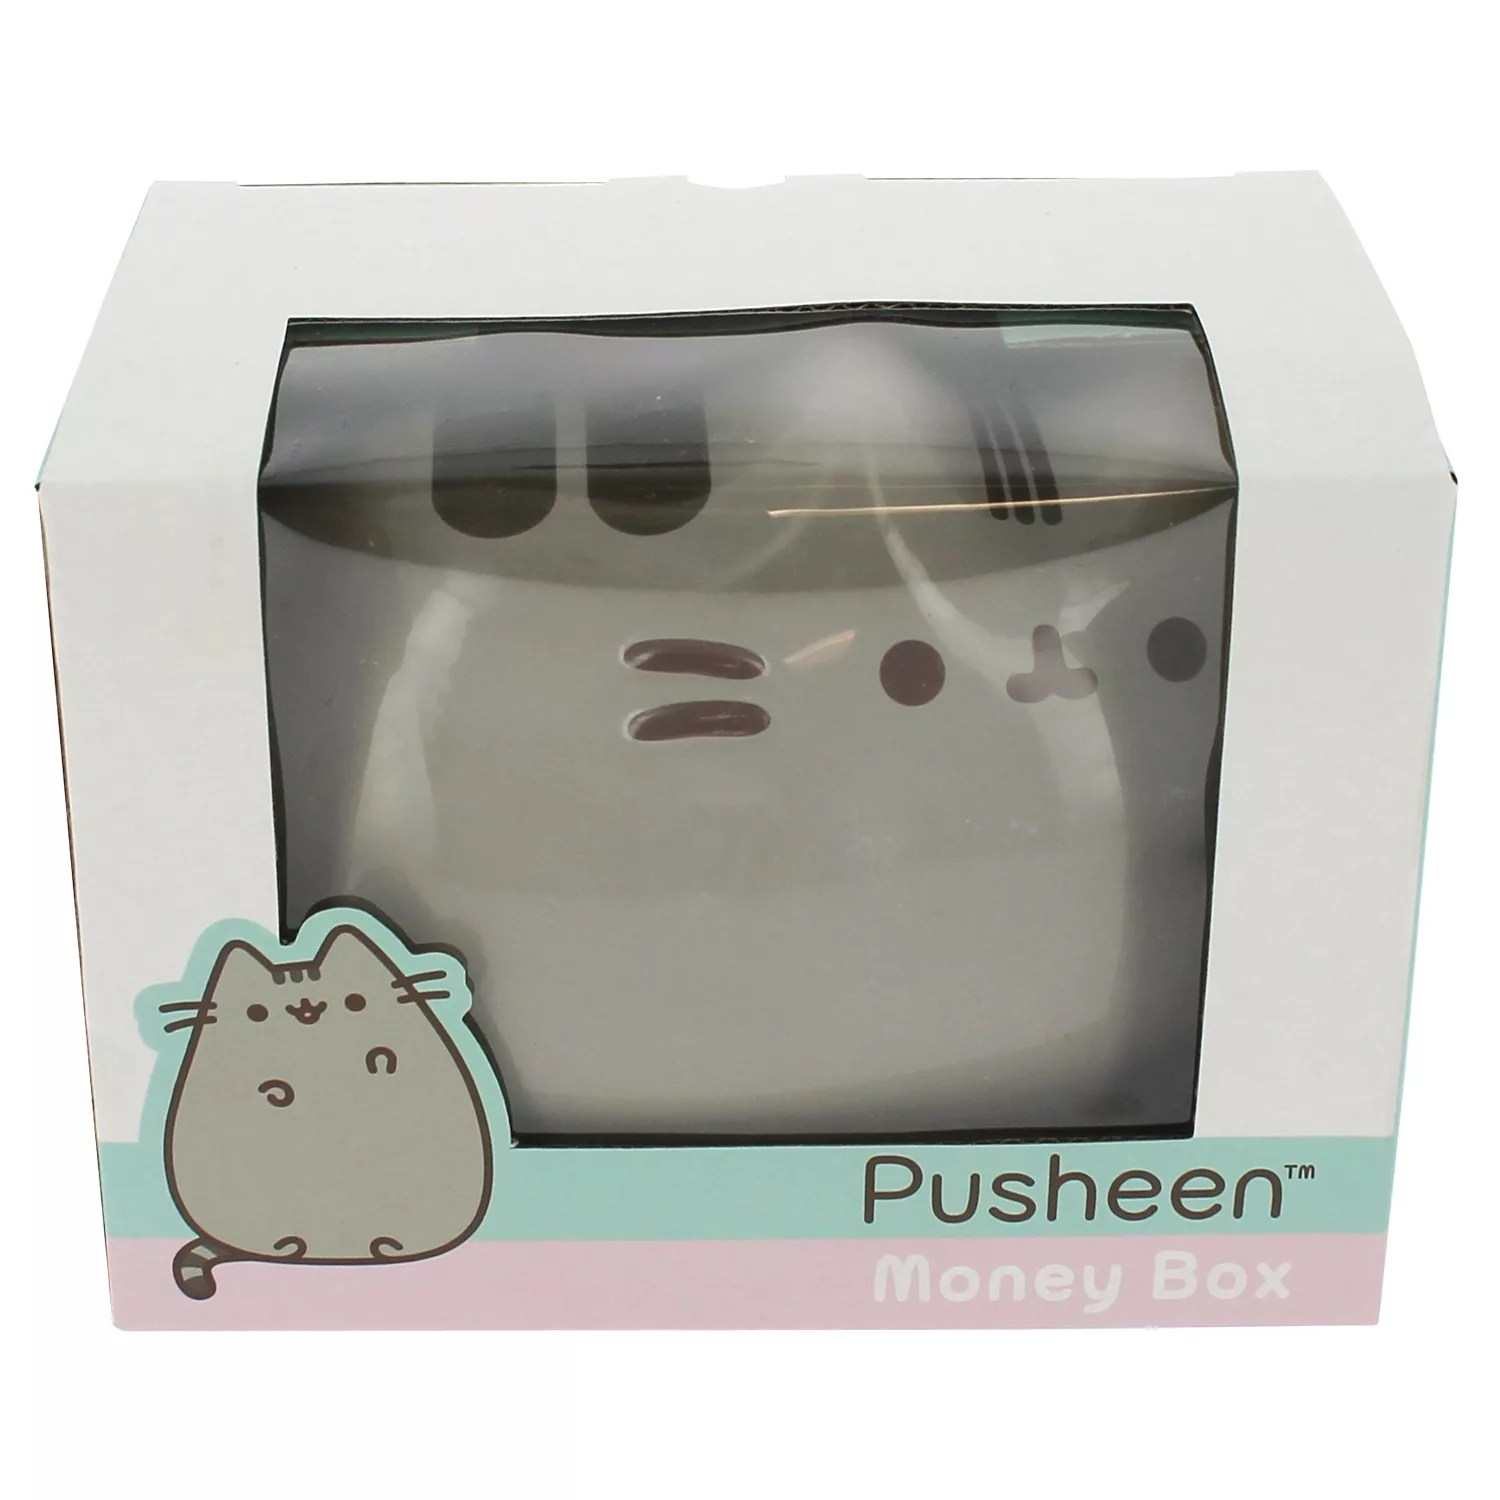 Buy Money Box Offer Pusheen Money Box Grey At John Lewis And Partners